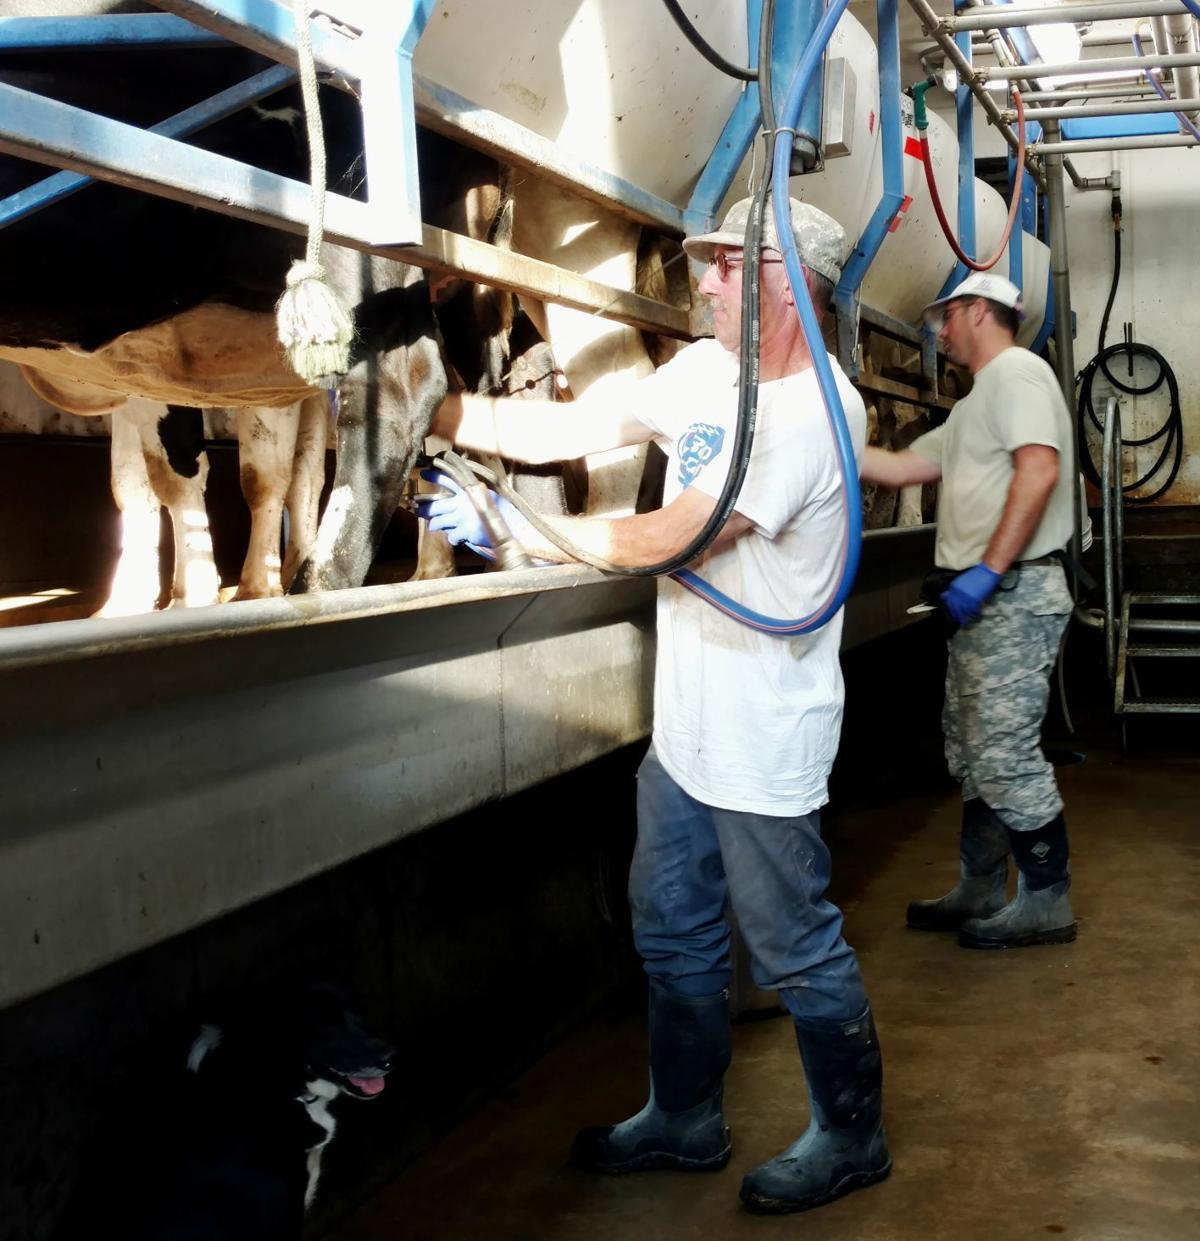 Andy Bures and Matt Keesling milking cows